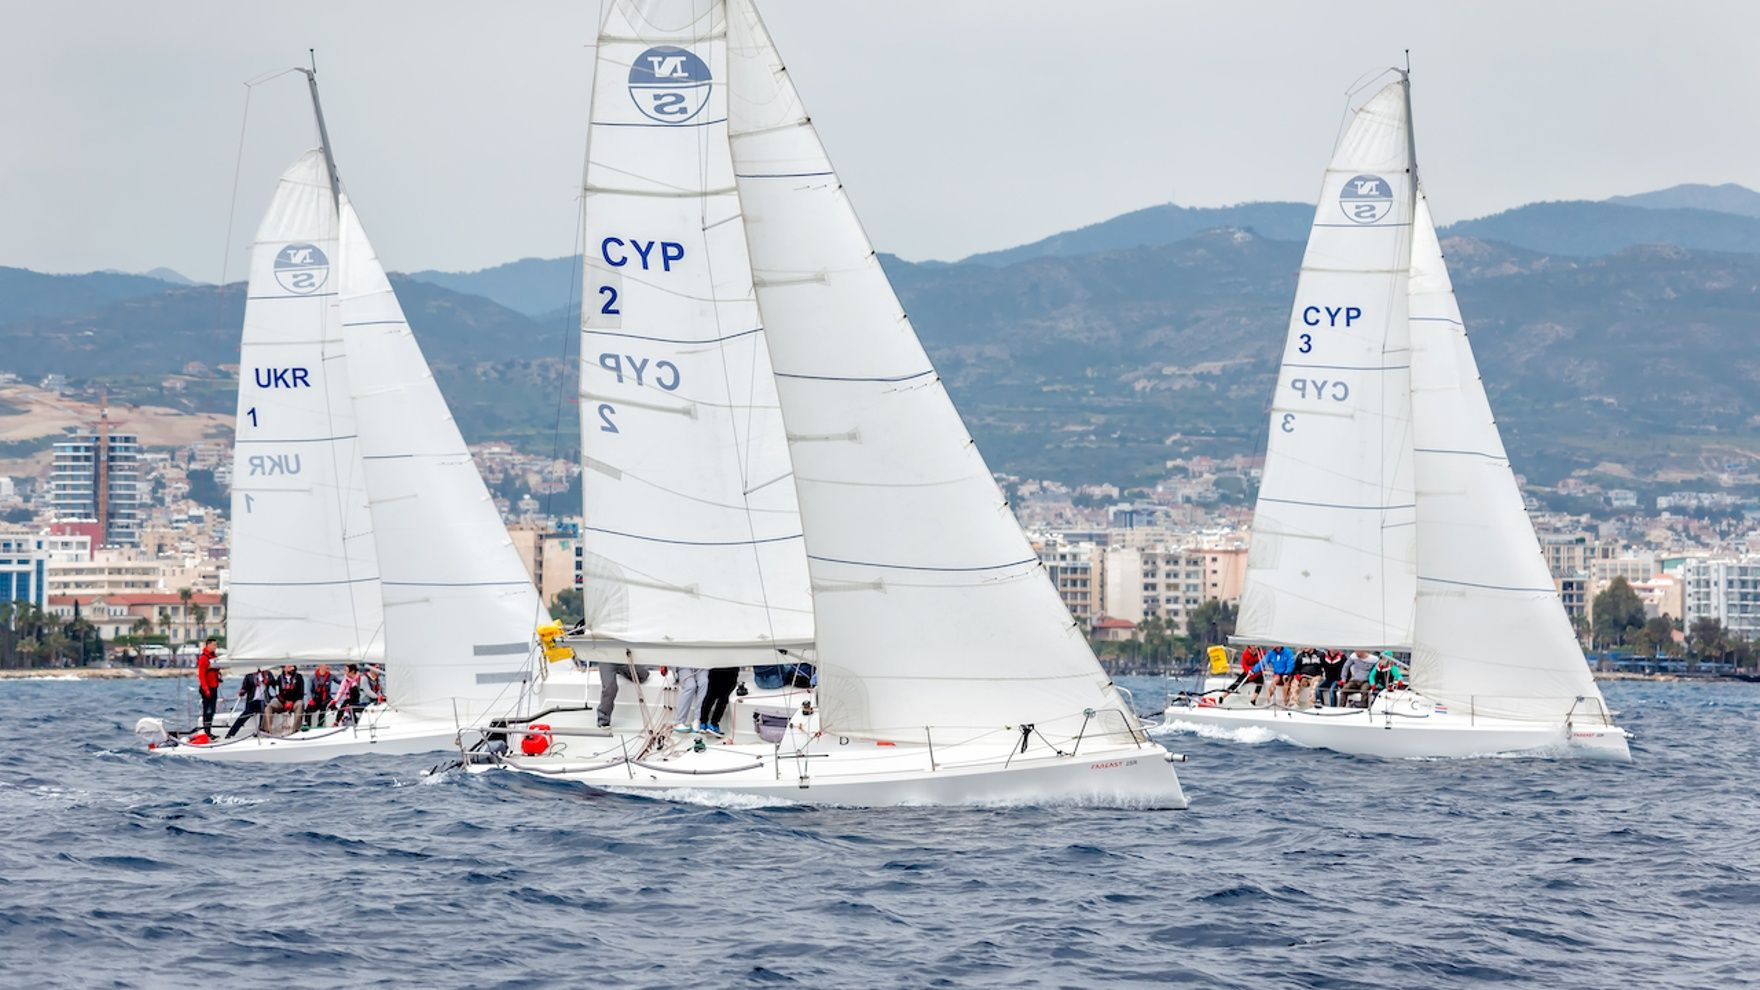 Sailing school in Limassol